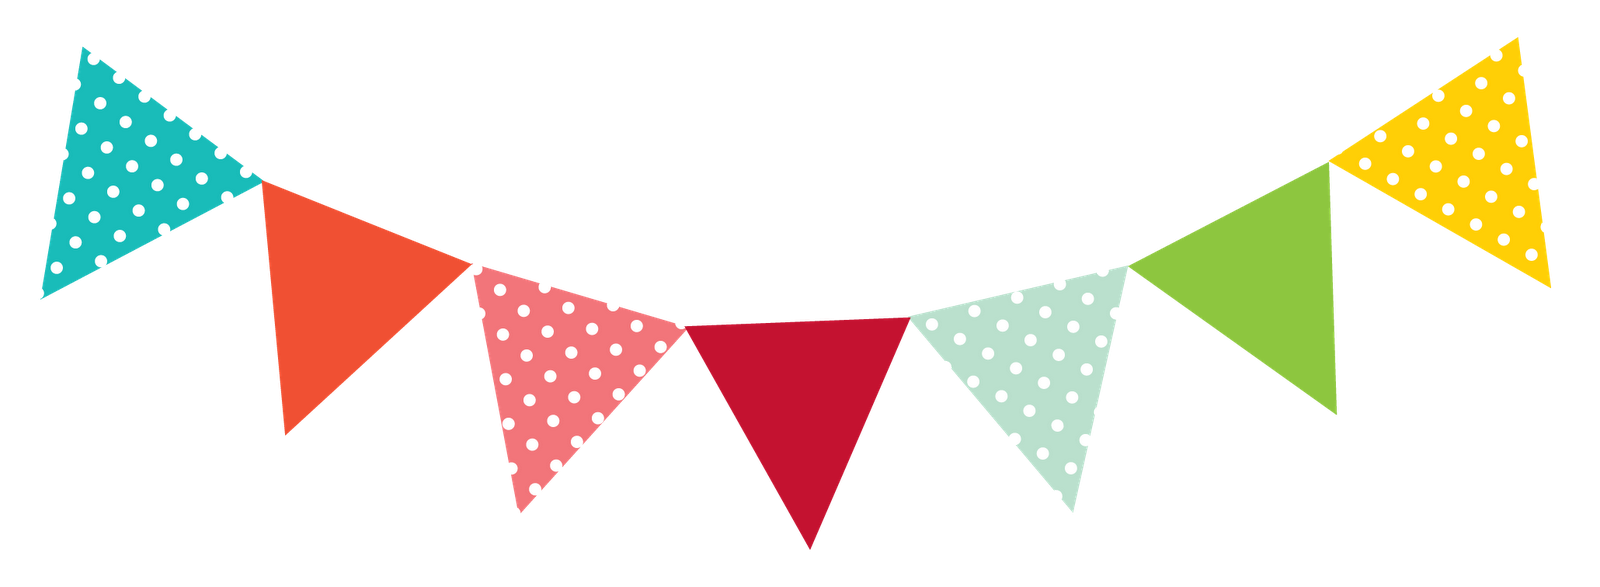 Bunting clipart Bunting Vintage Download Clip Art